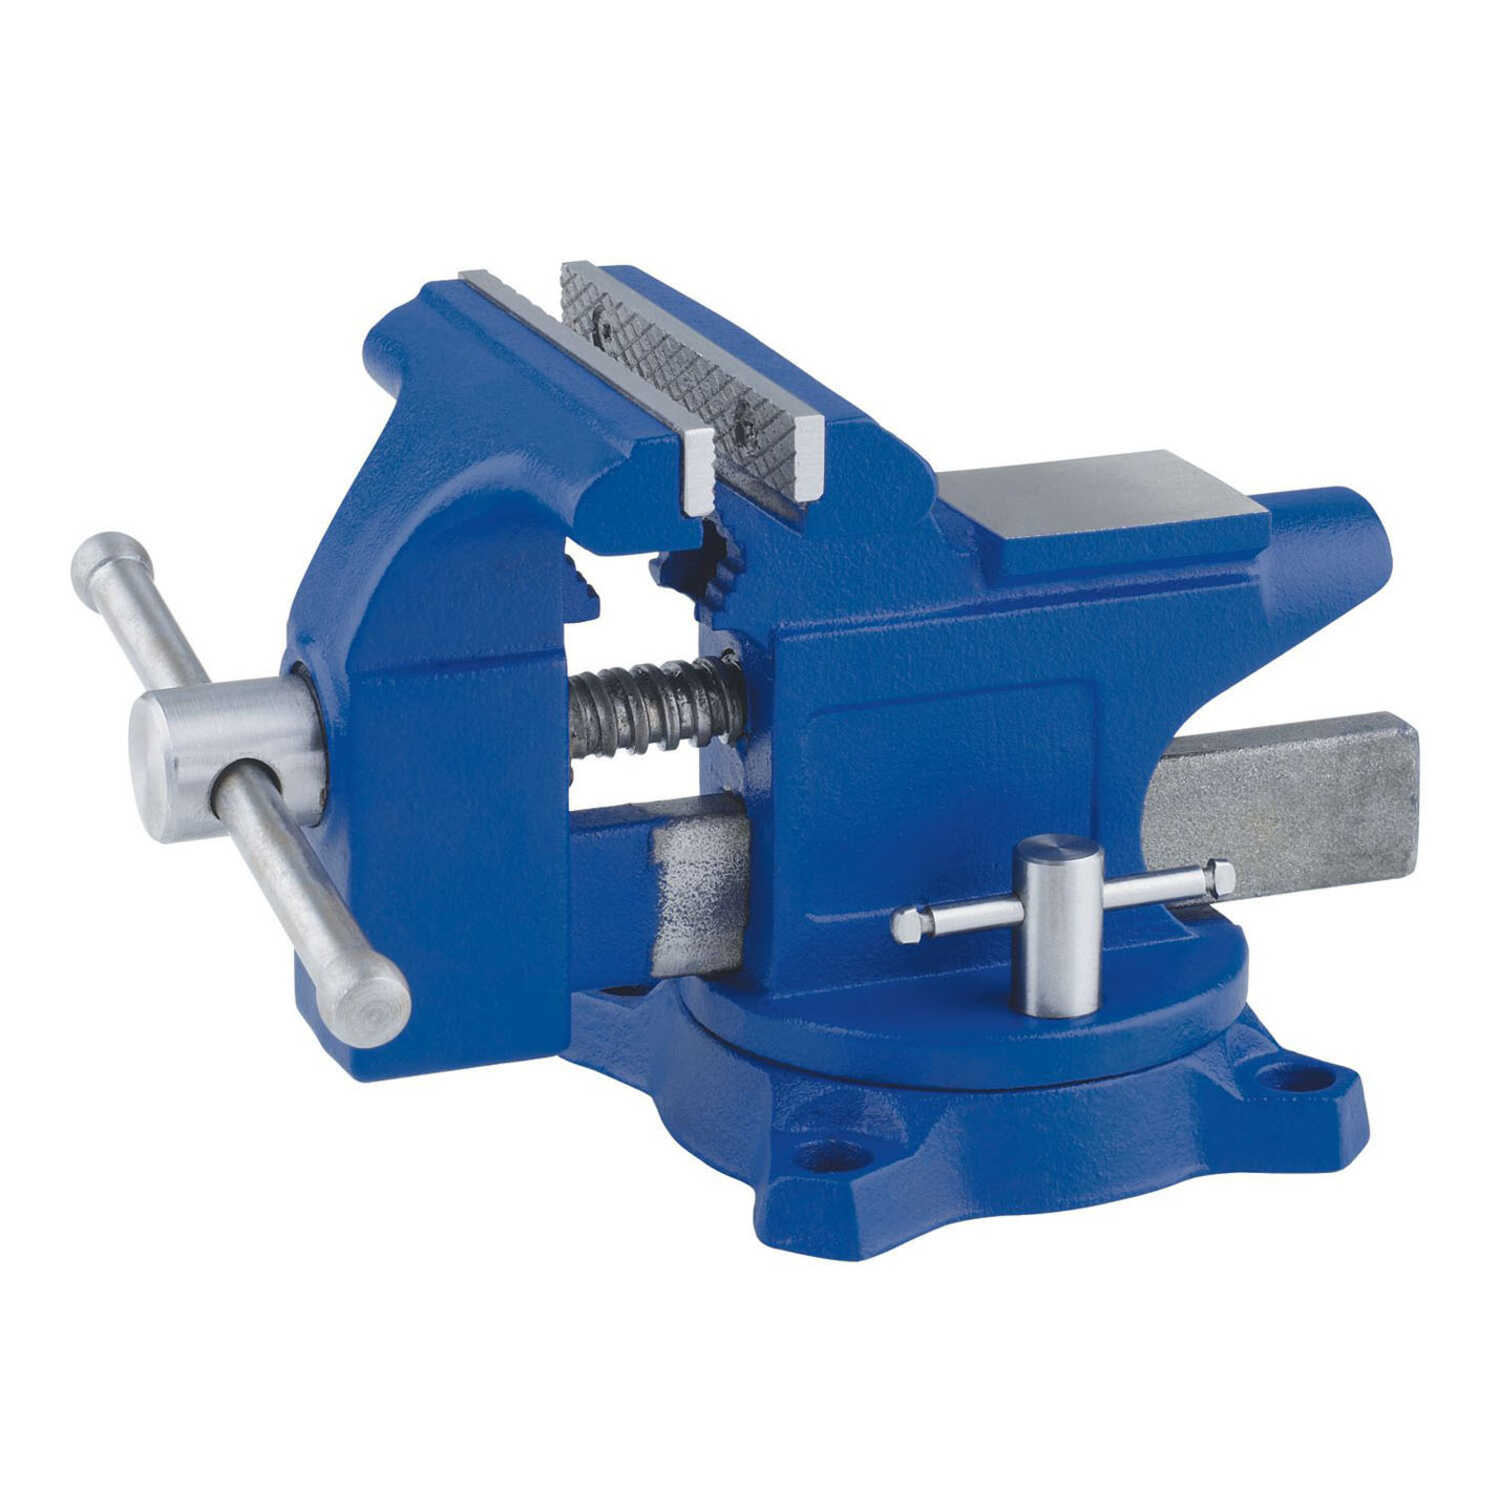 Irwin  4.5 in. Steel  Workshop Bench Vise  Blue  Swivel Base